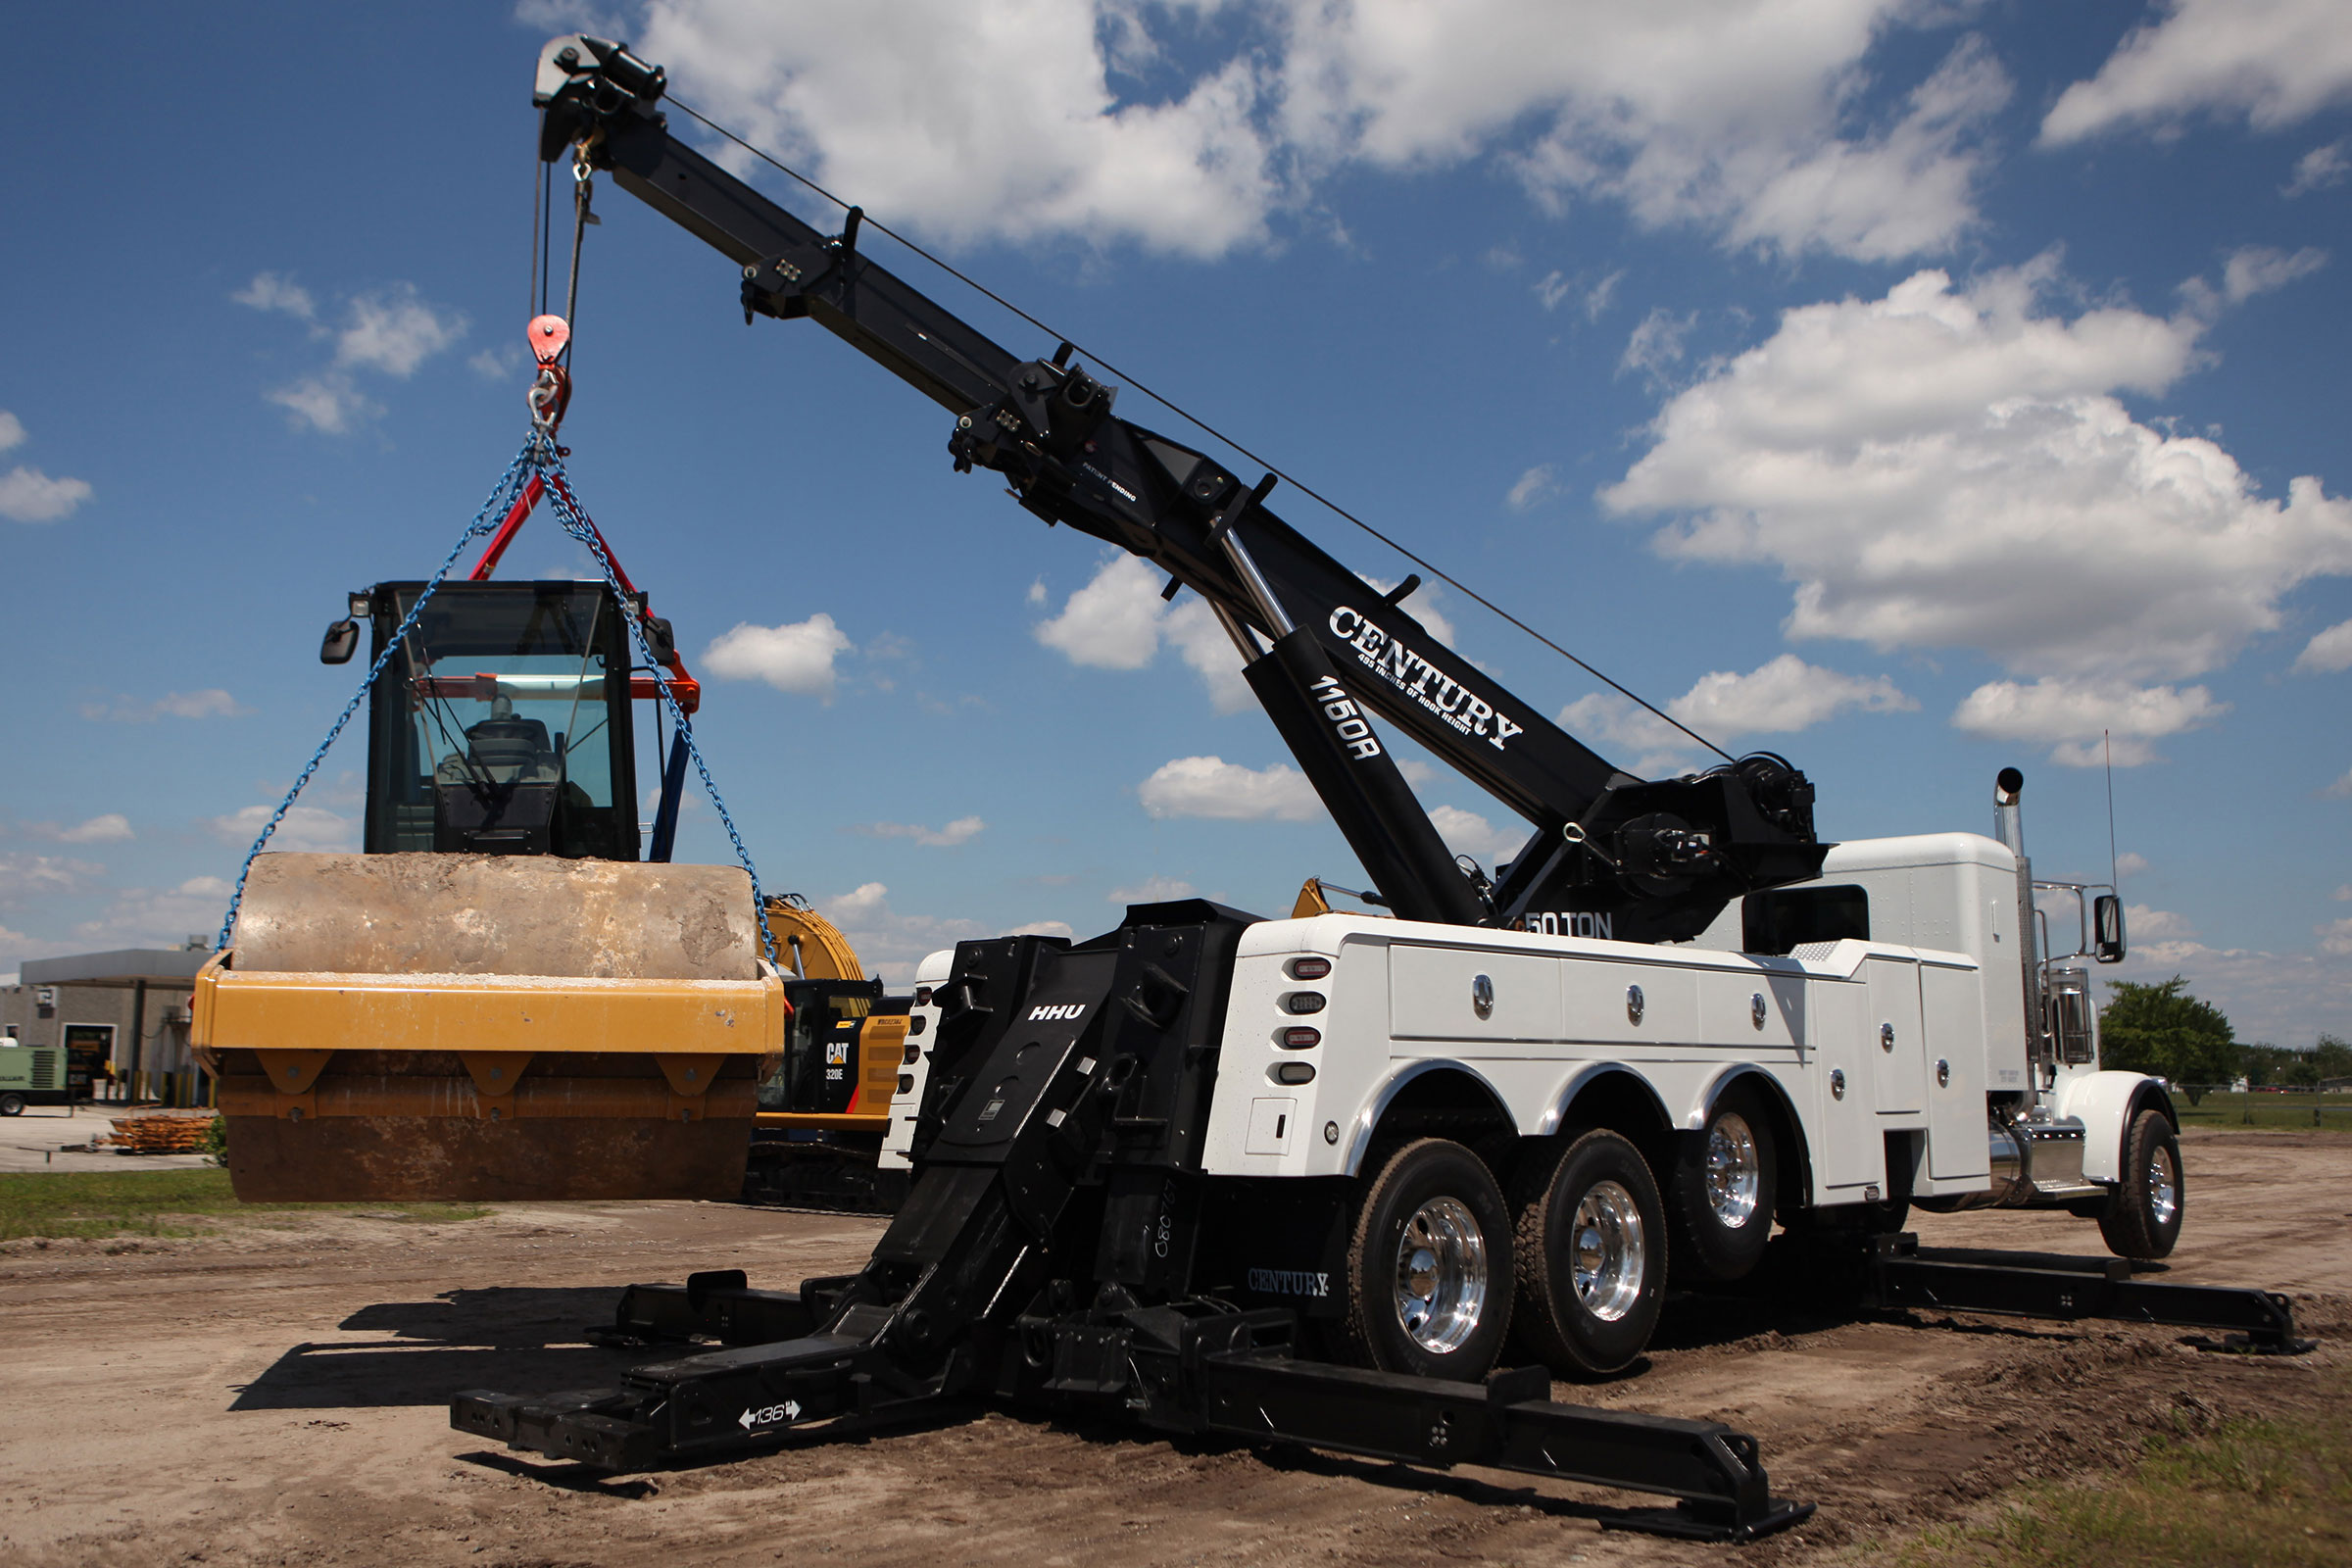 The Century 1150 is the industry leading heavy duty rotator wrecker